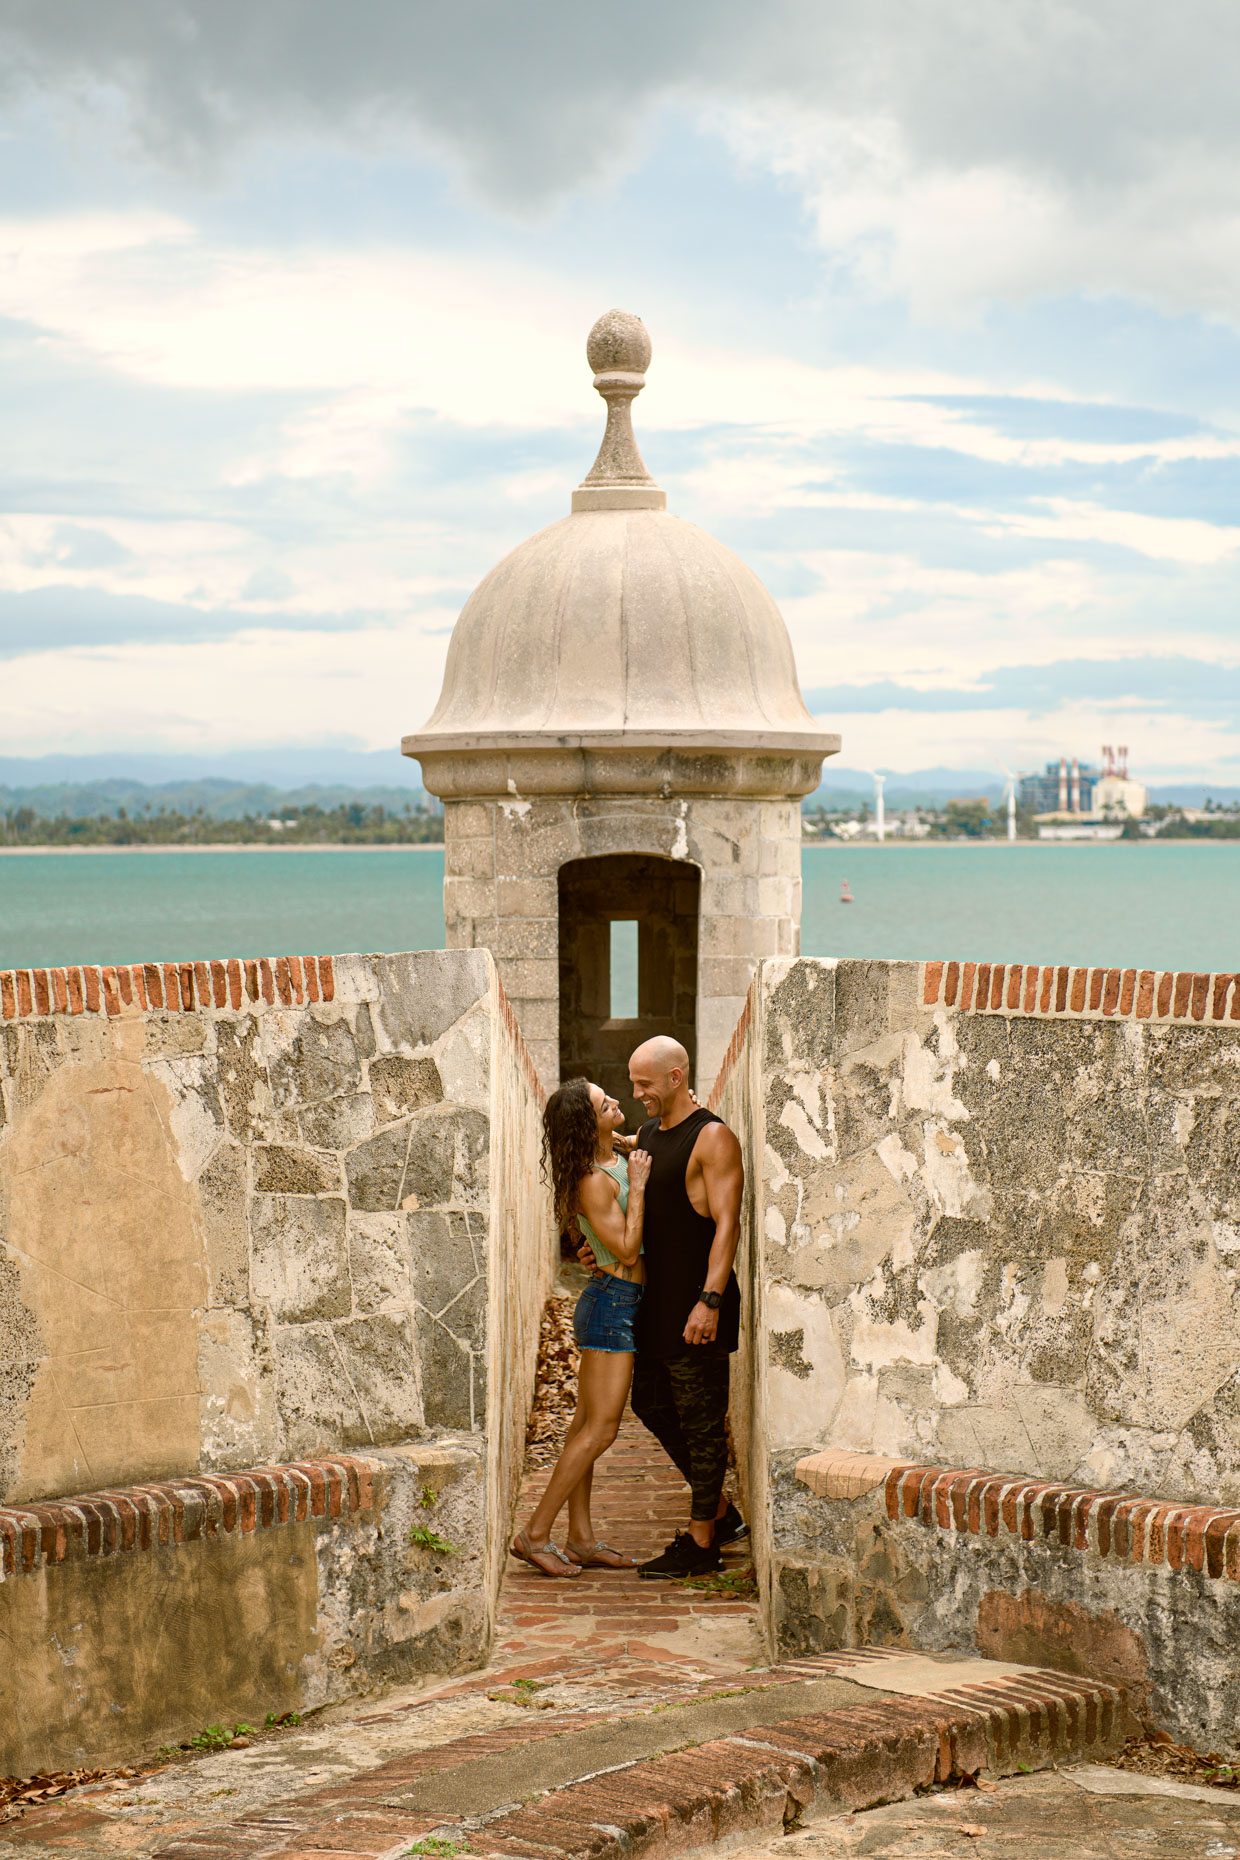 Travel lifestyle photoshoot - Natalie & George Matthews in Old San Juan, Puerto Rico